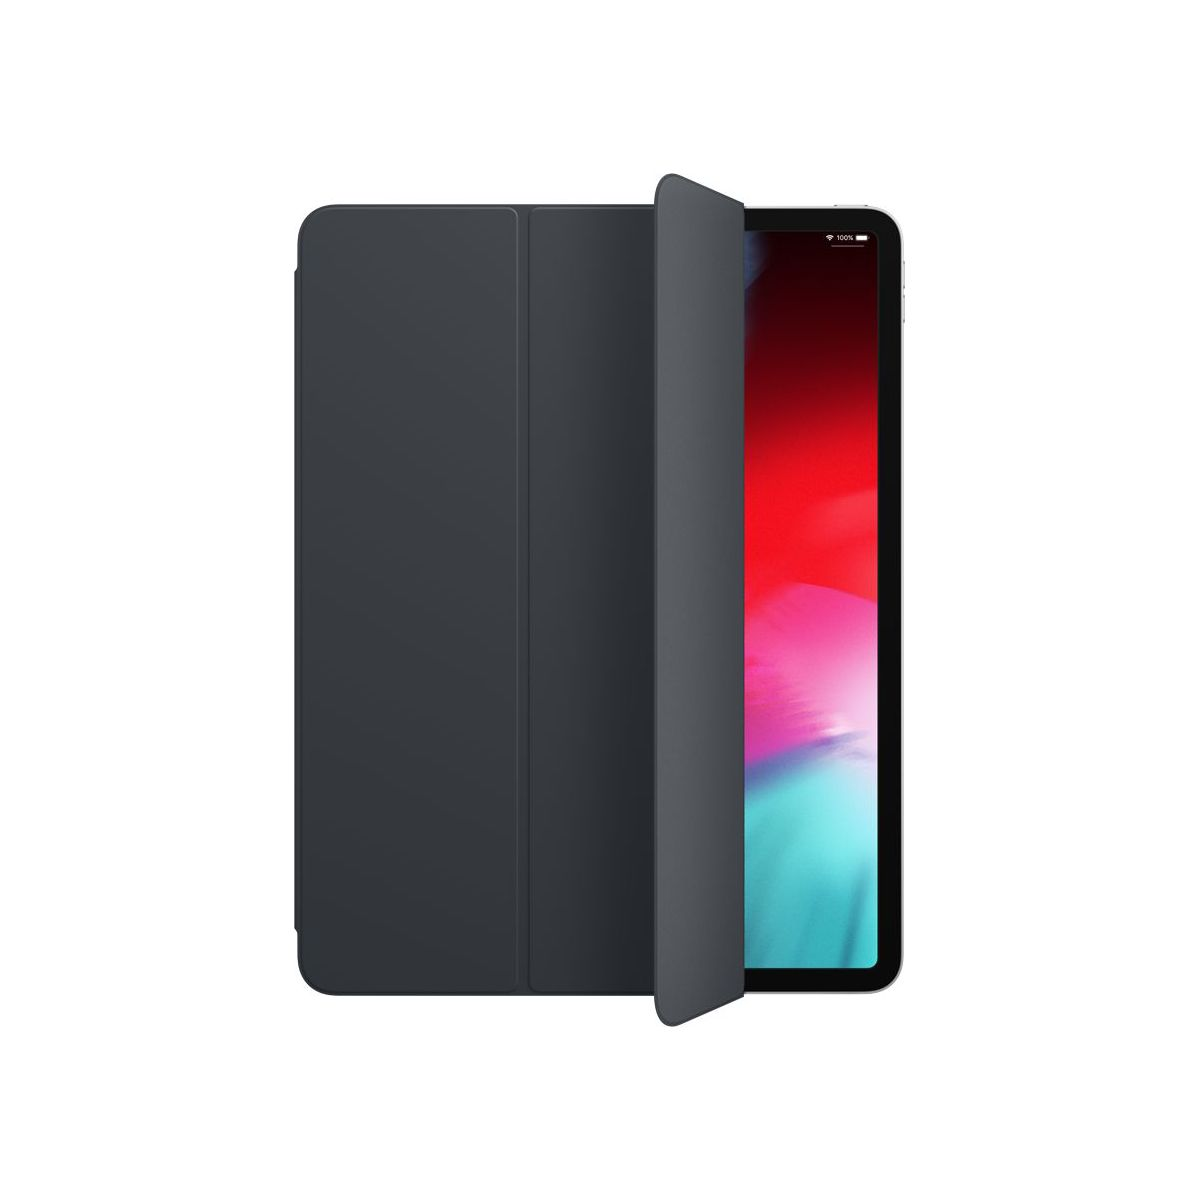 Etui APPLE iPad Pro 12.9' 2018 anthracite (photo)